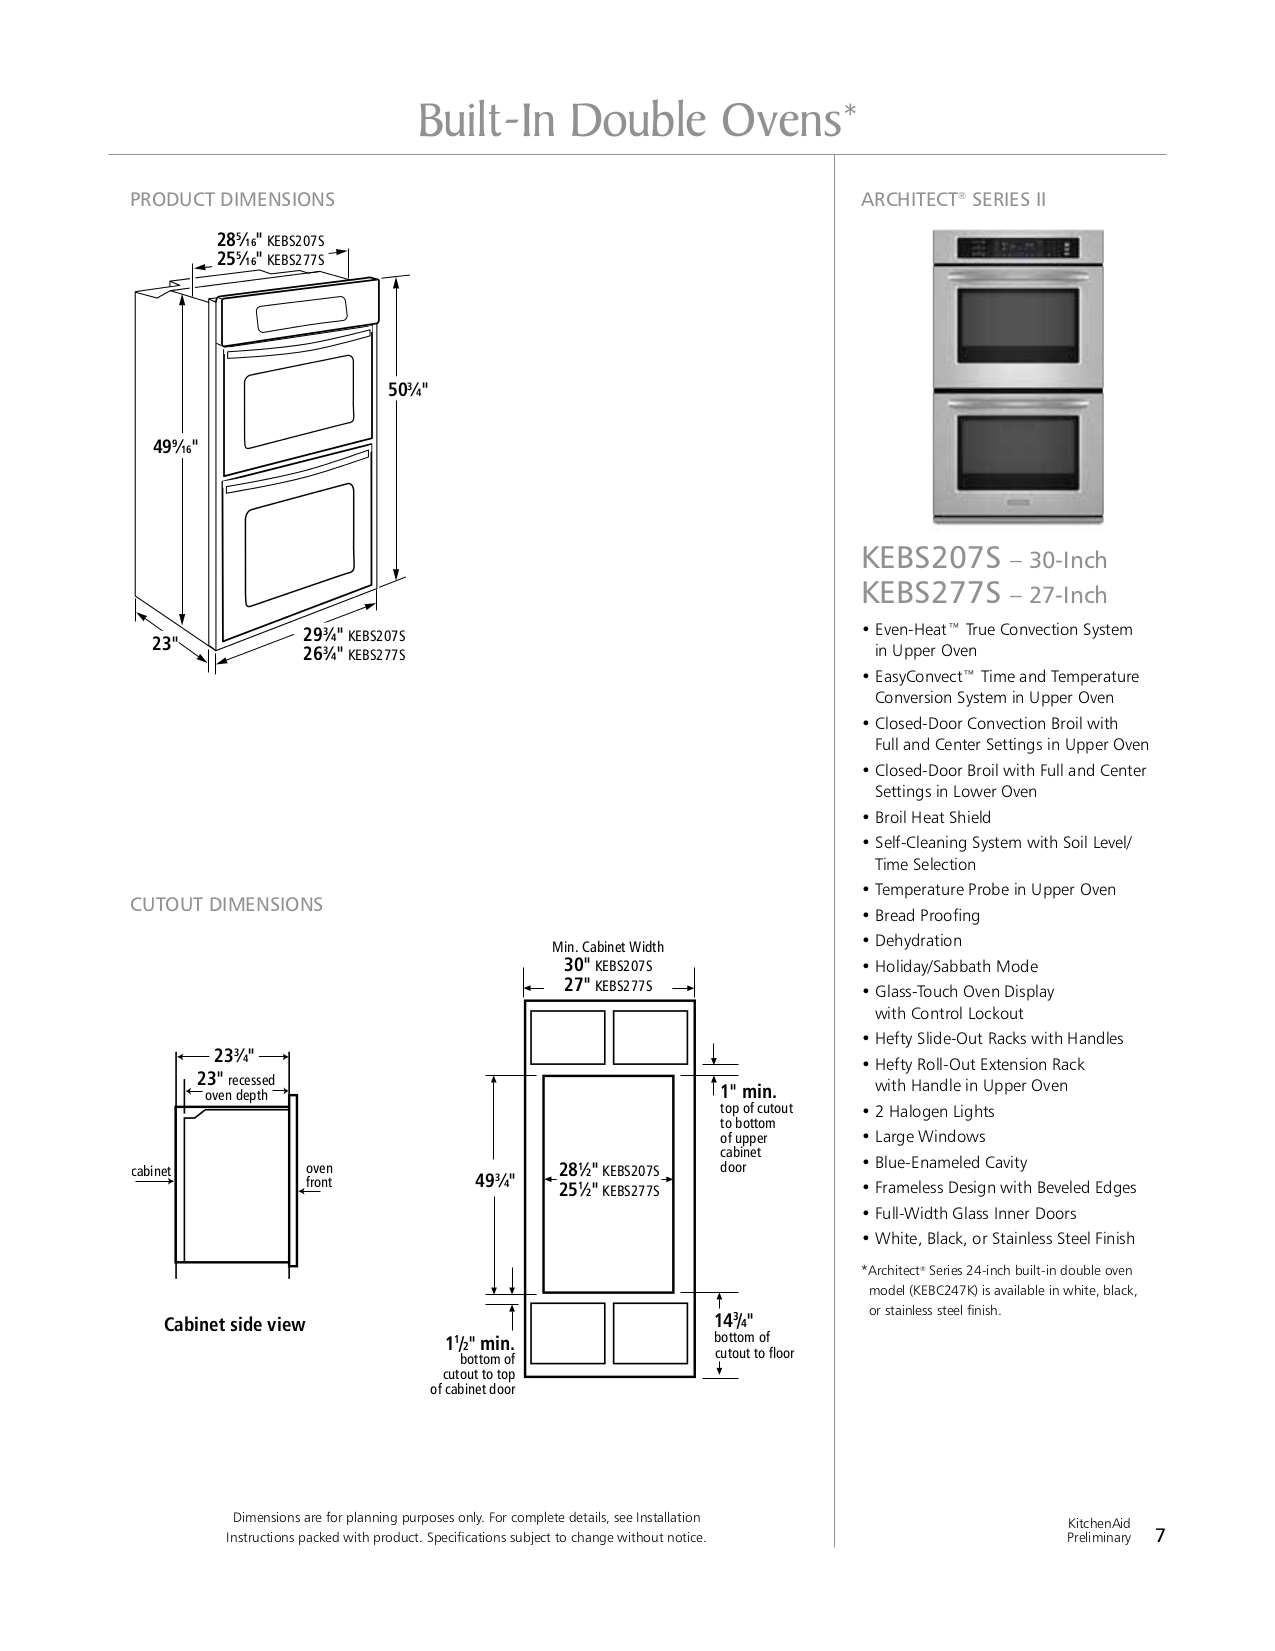 pdf manual for kitchenaid oven architect series ii kebs277s